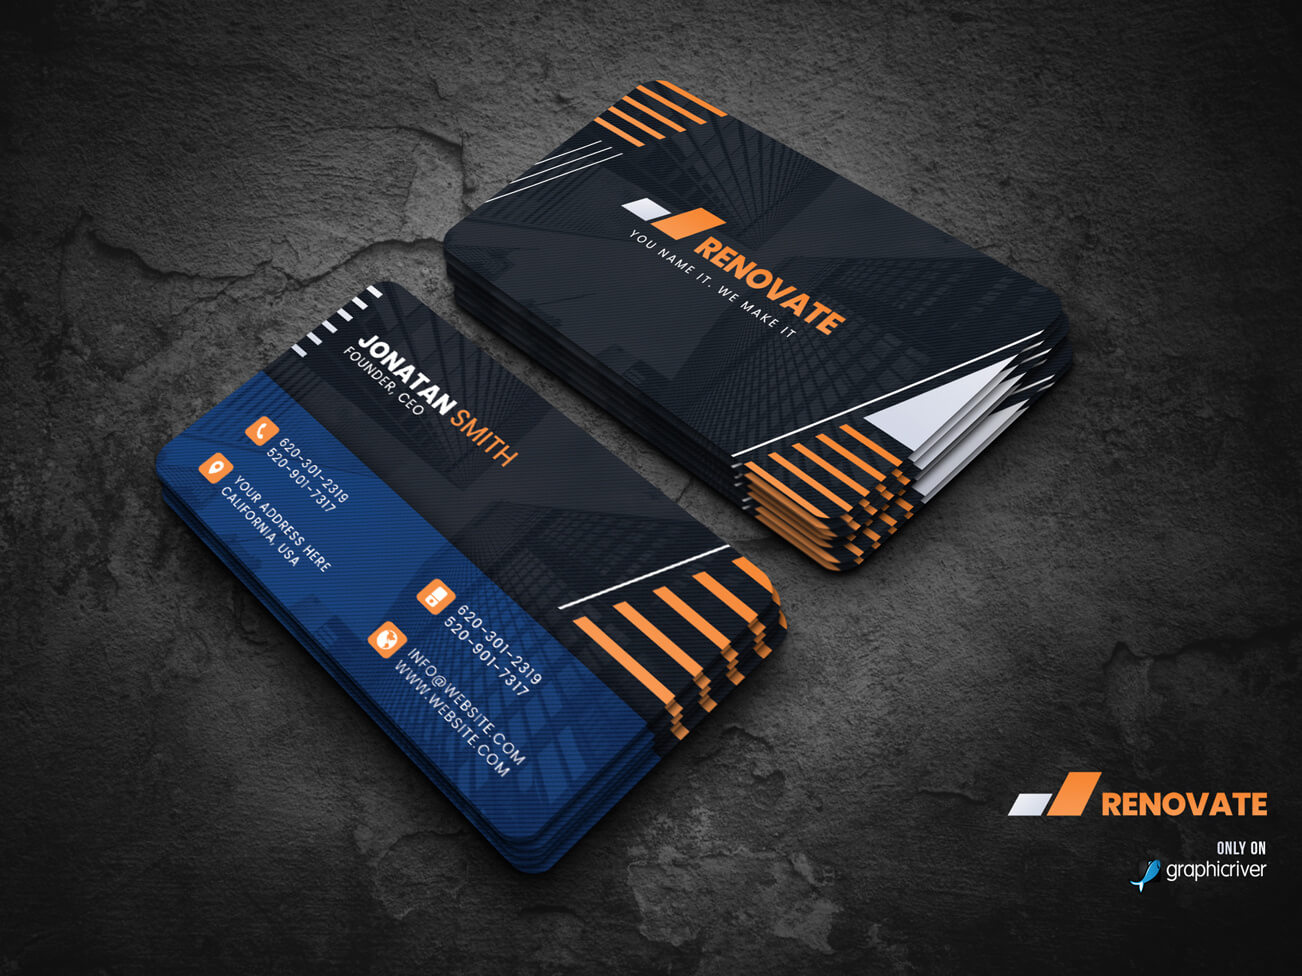 Business Card Templatedalibor Stankovic On Dribbble For Photoshop Name Card Template